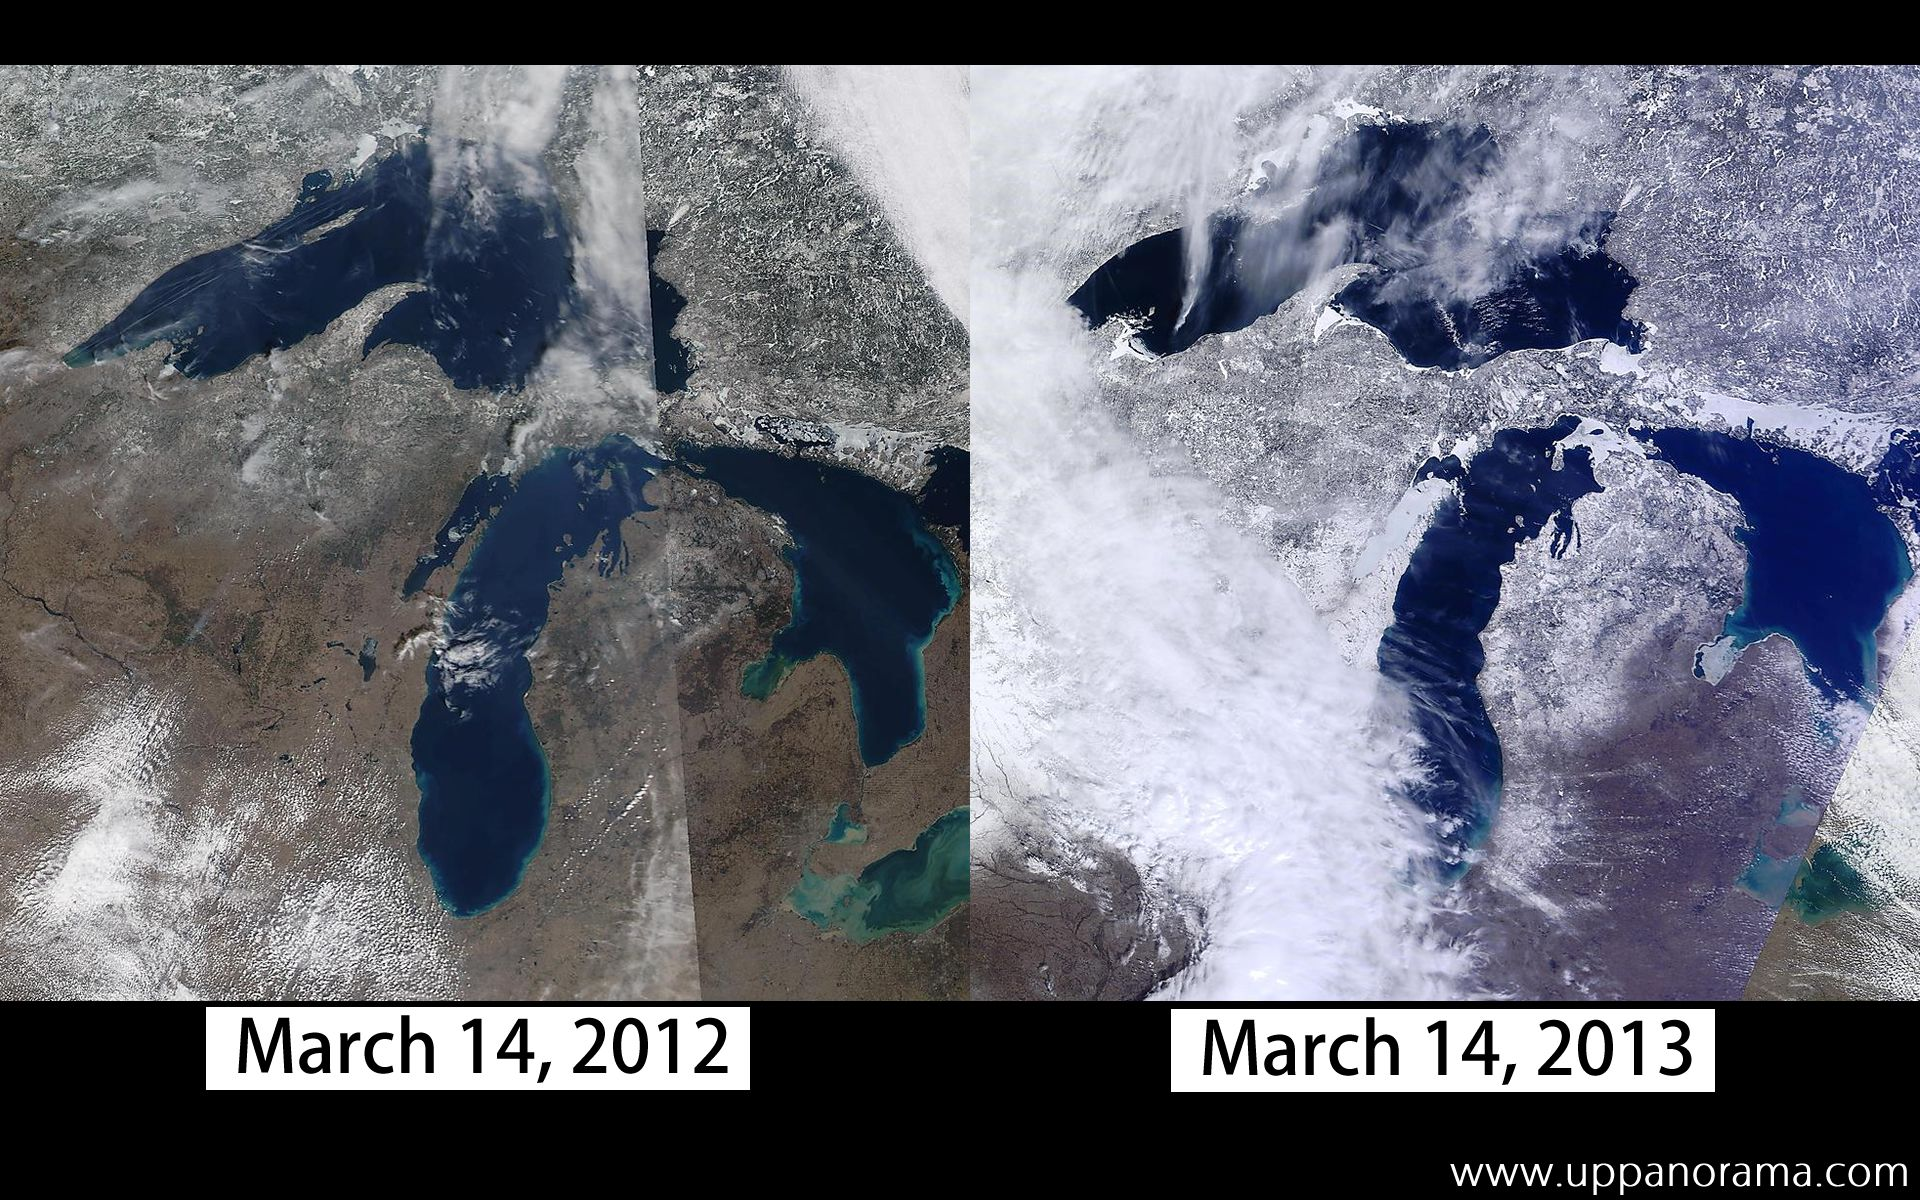 This year, 2013, we have a lot more snow on the ground in March than the previous year. This time last year we were seeing temperatures 50F and above. In the past week, we have had nearly 2 feet of snow. These satellite images illustrate the differences between March 2012 and March 2013.